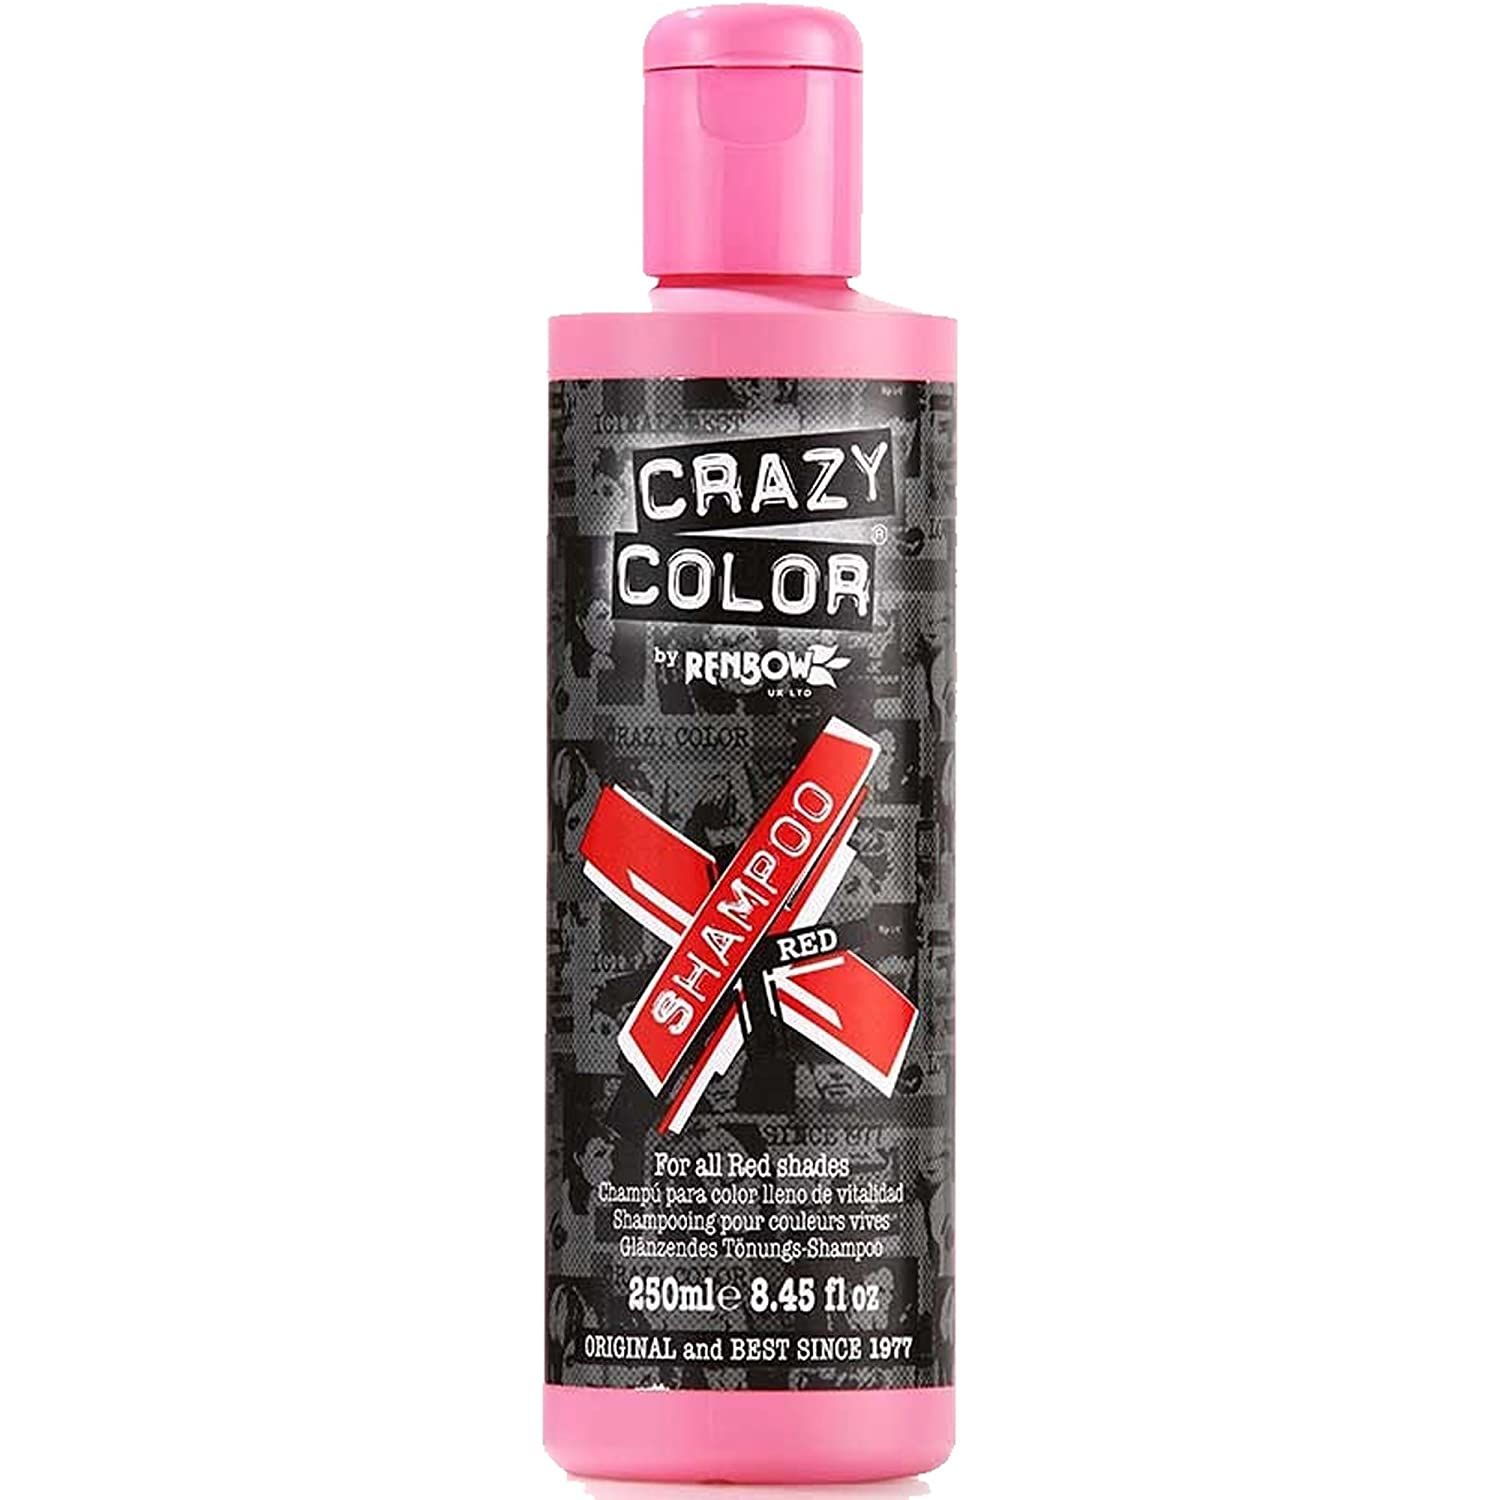 Crazy Color Shampoo